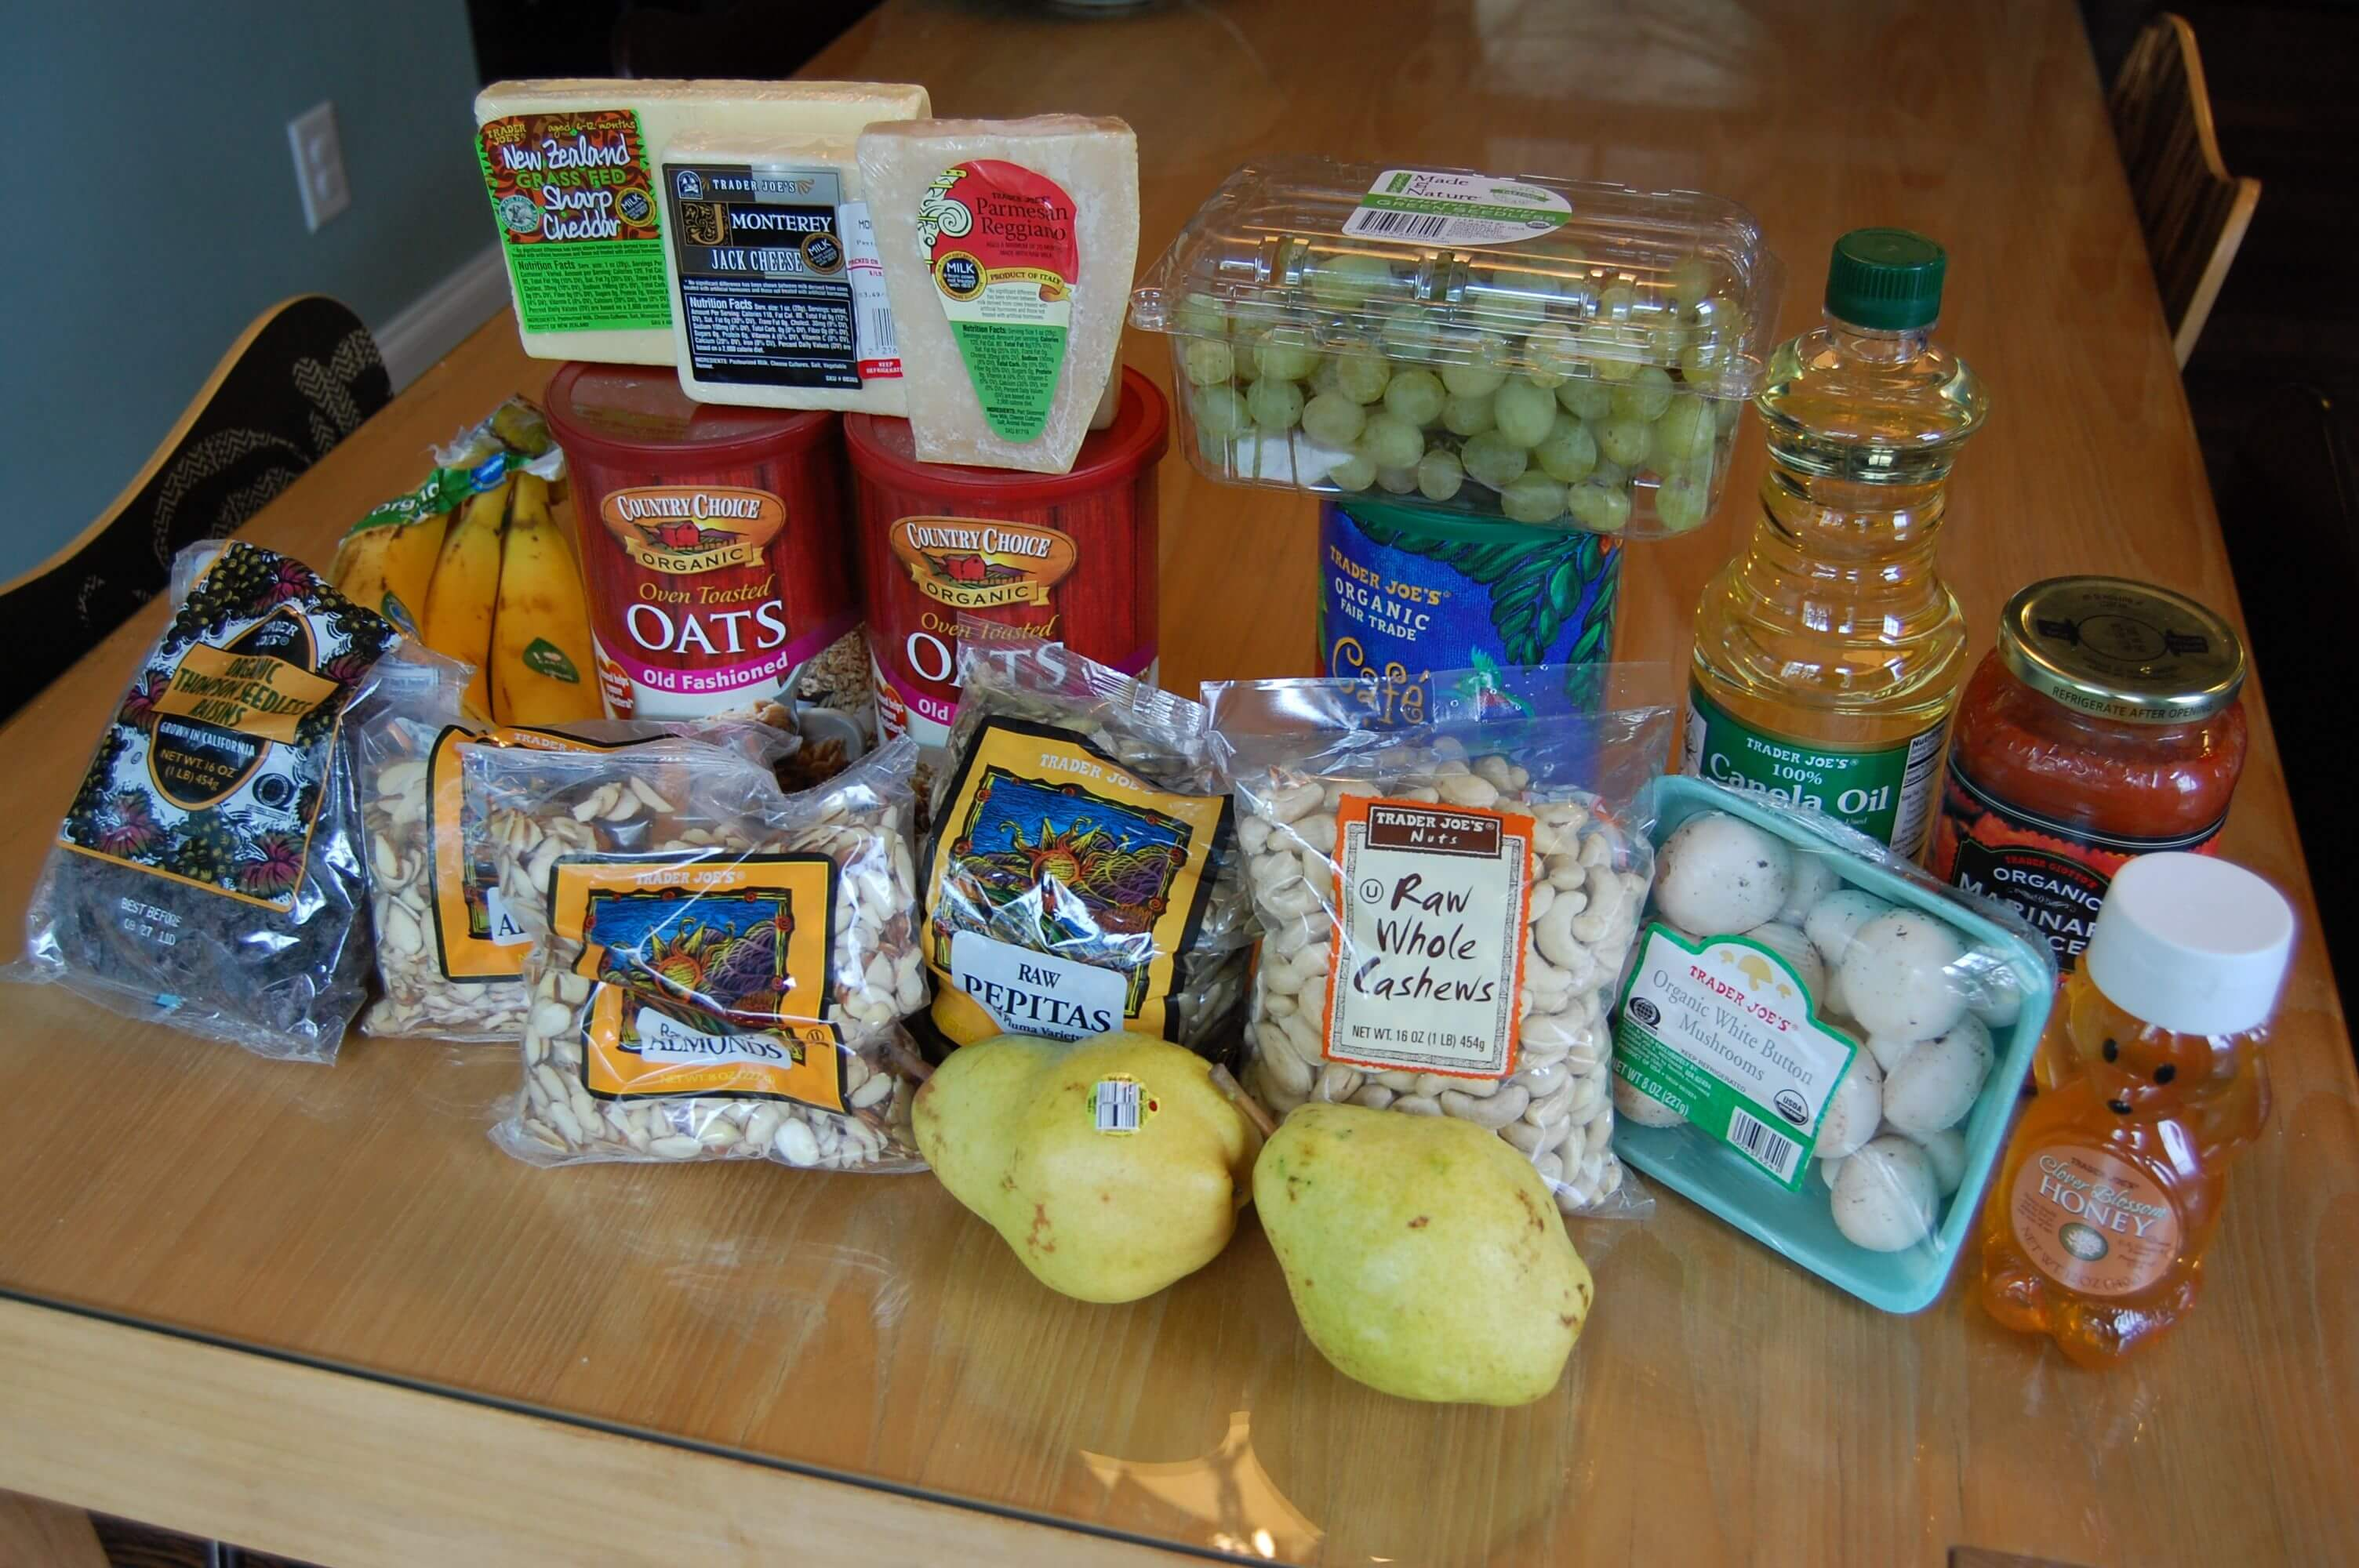 Groceries from Trader Joe's that include fruits, vegetables, nuts, and oats.